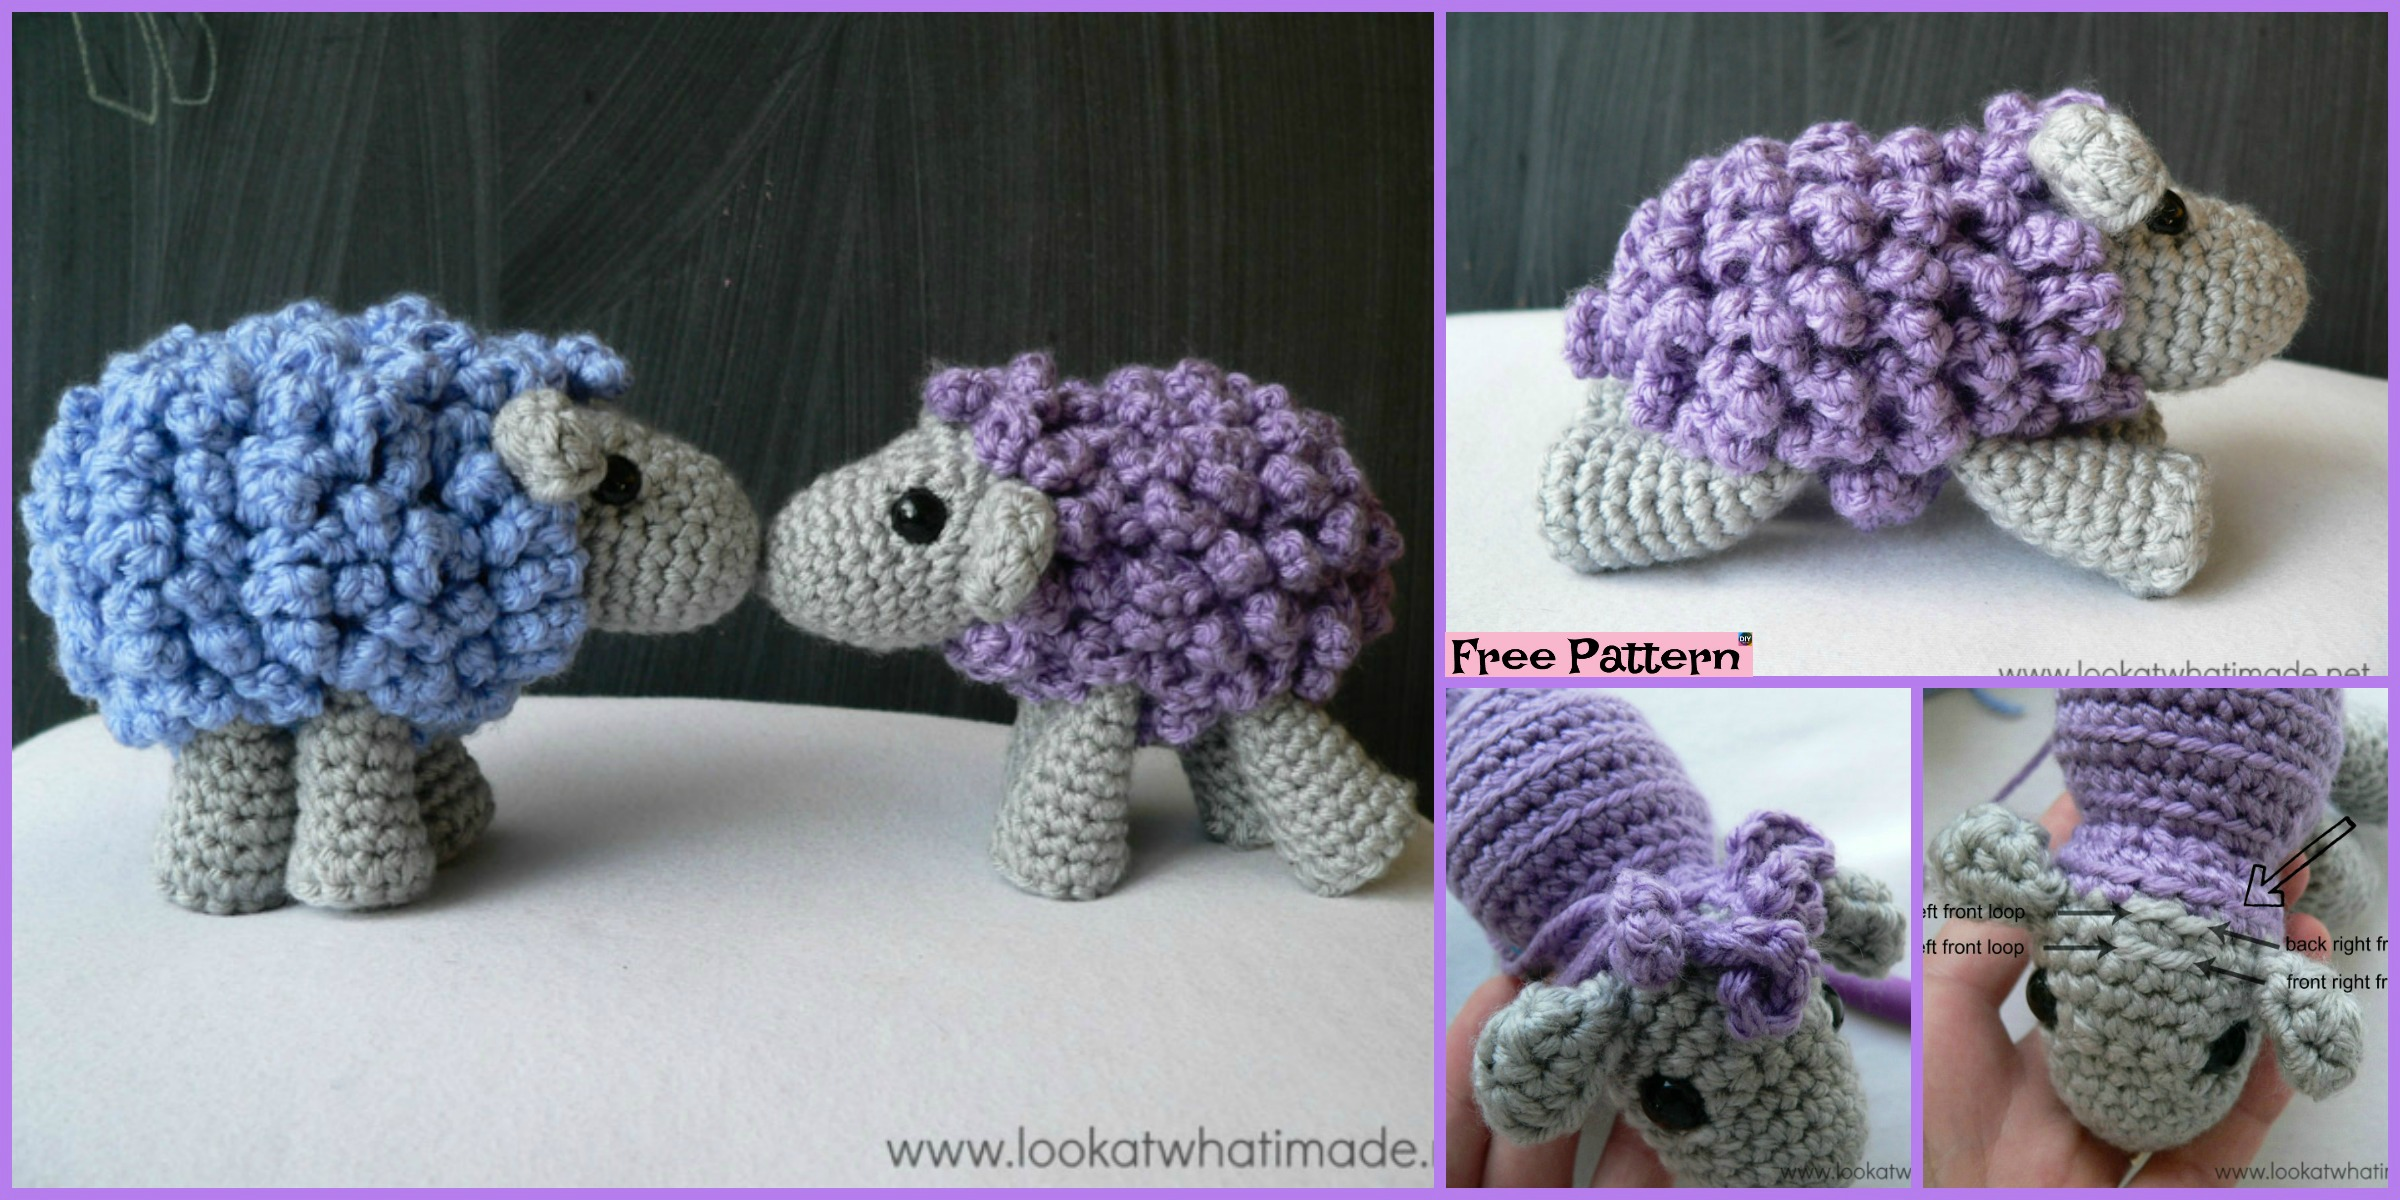 Adorable Crocheted Sheep – Free Pattern